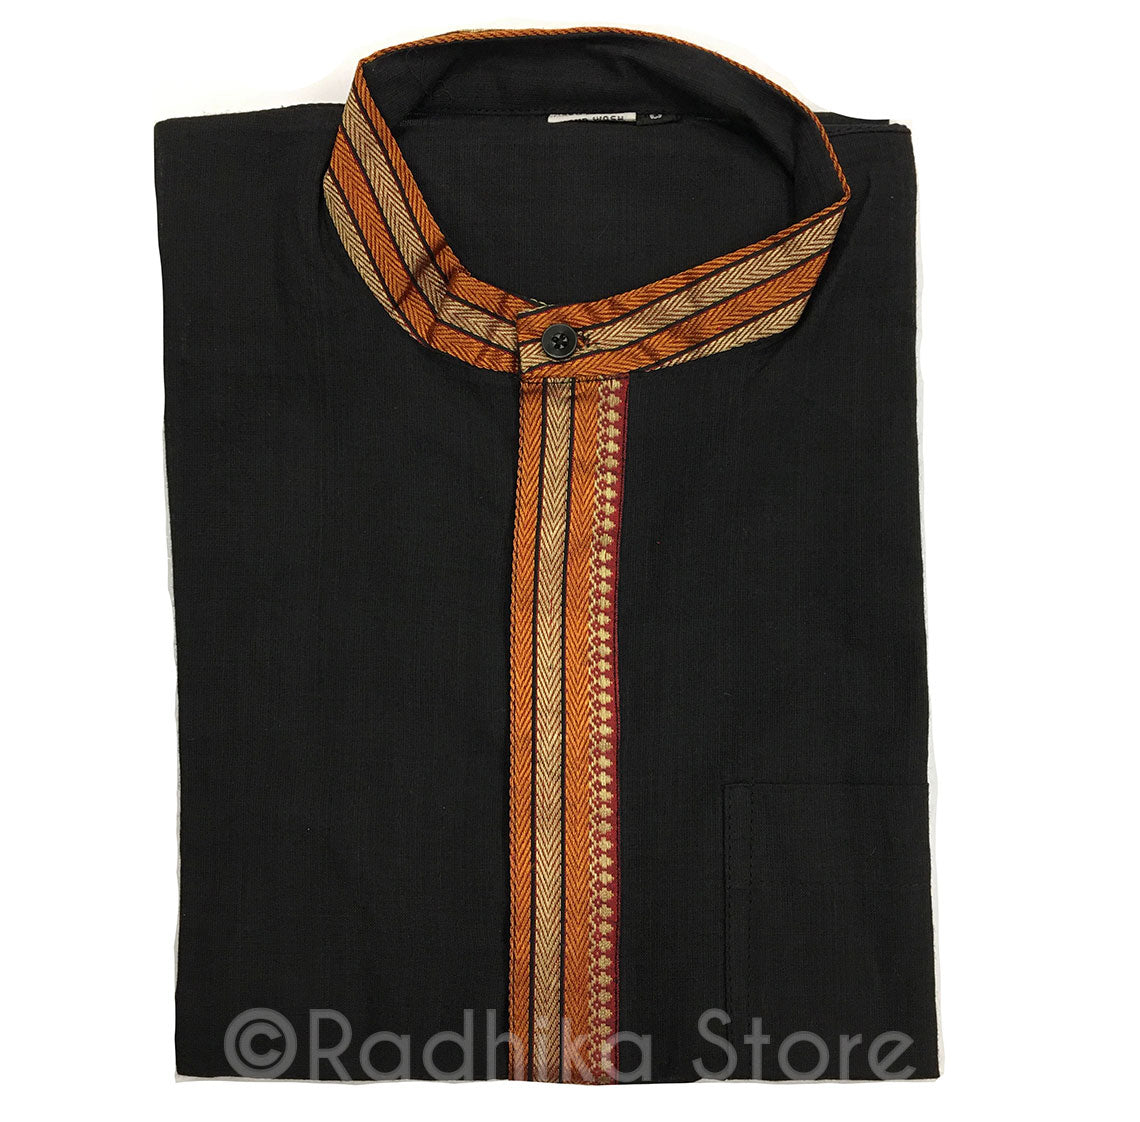 Black Kurtas - With Beige/Gold and Orange Trim - S,m,l,xl,